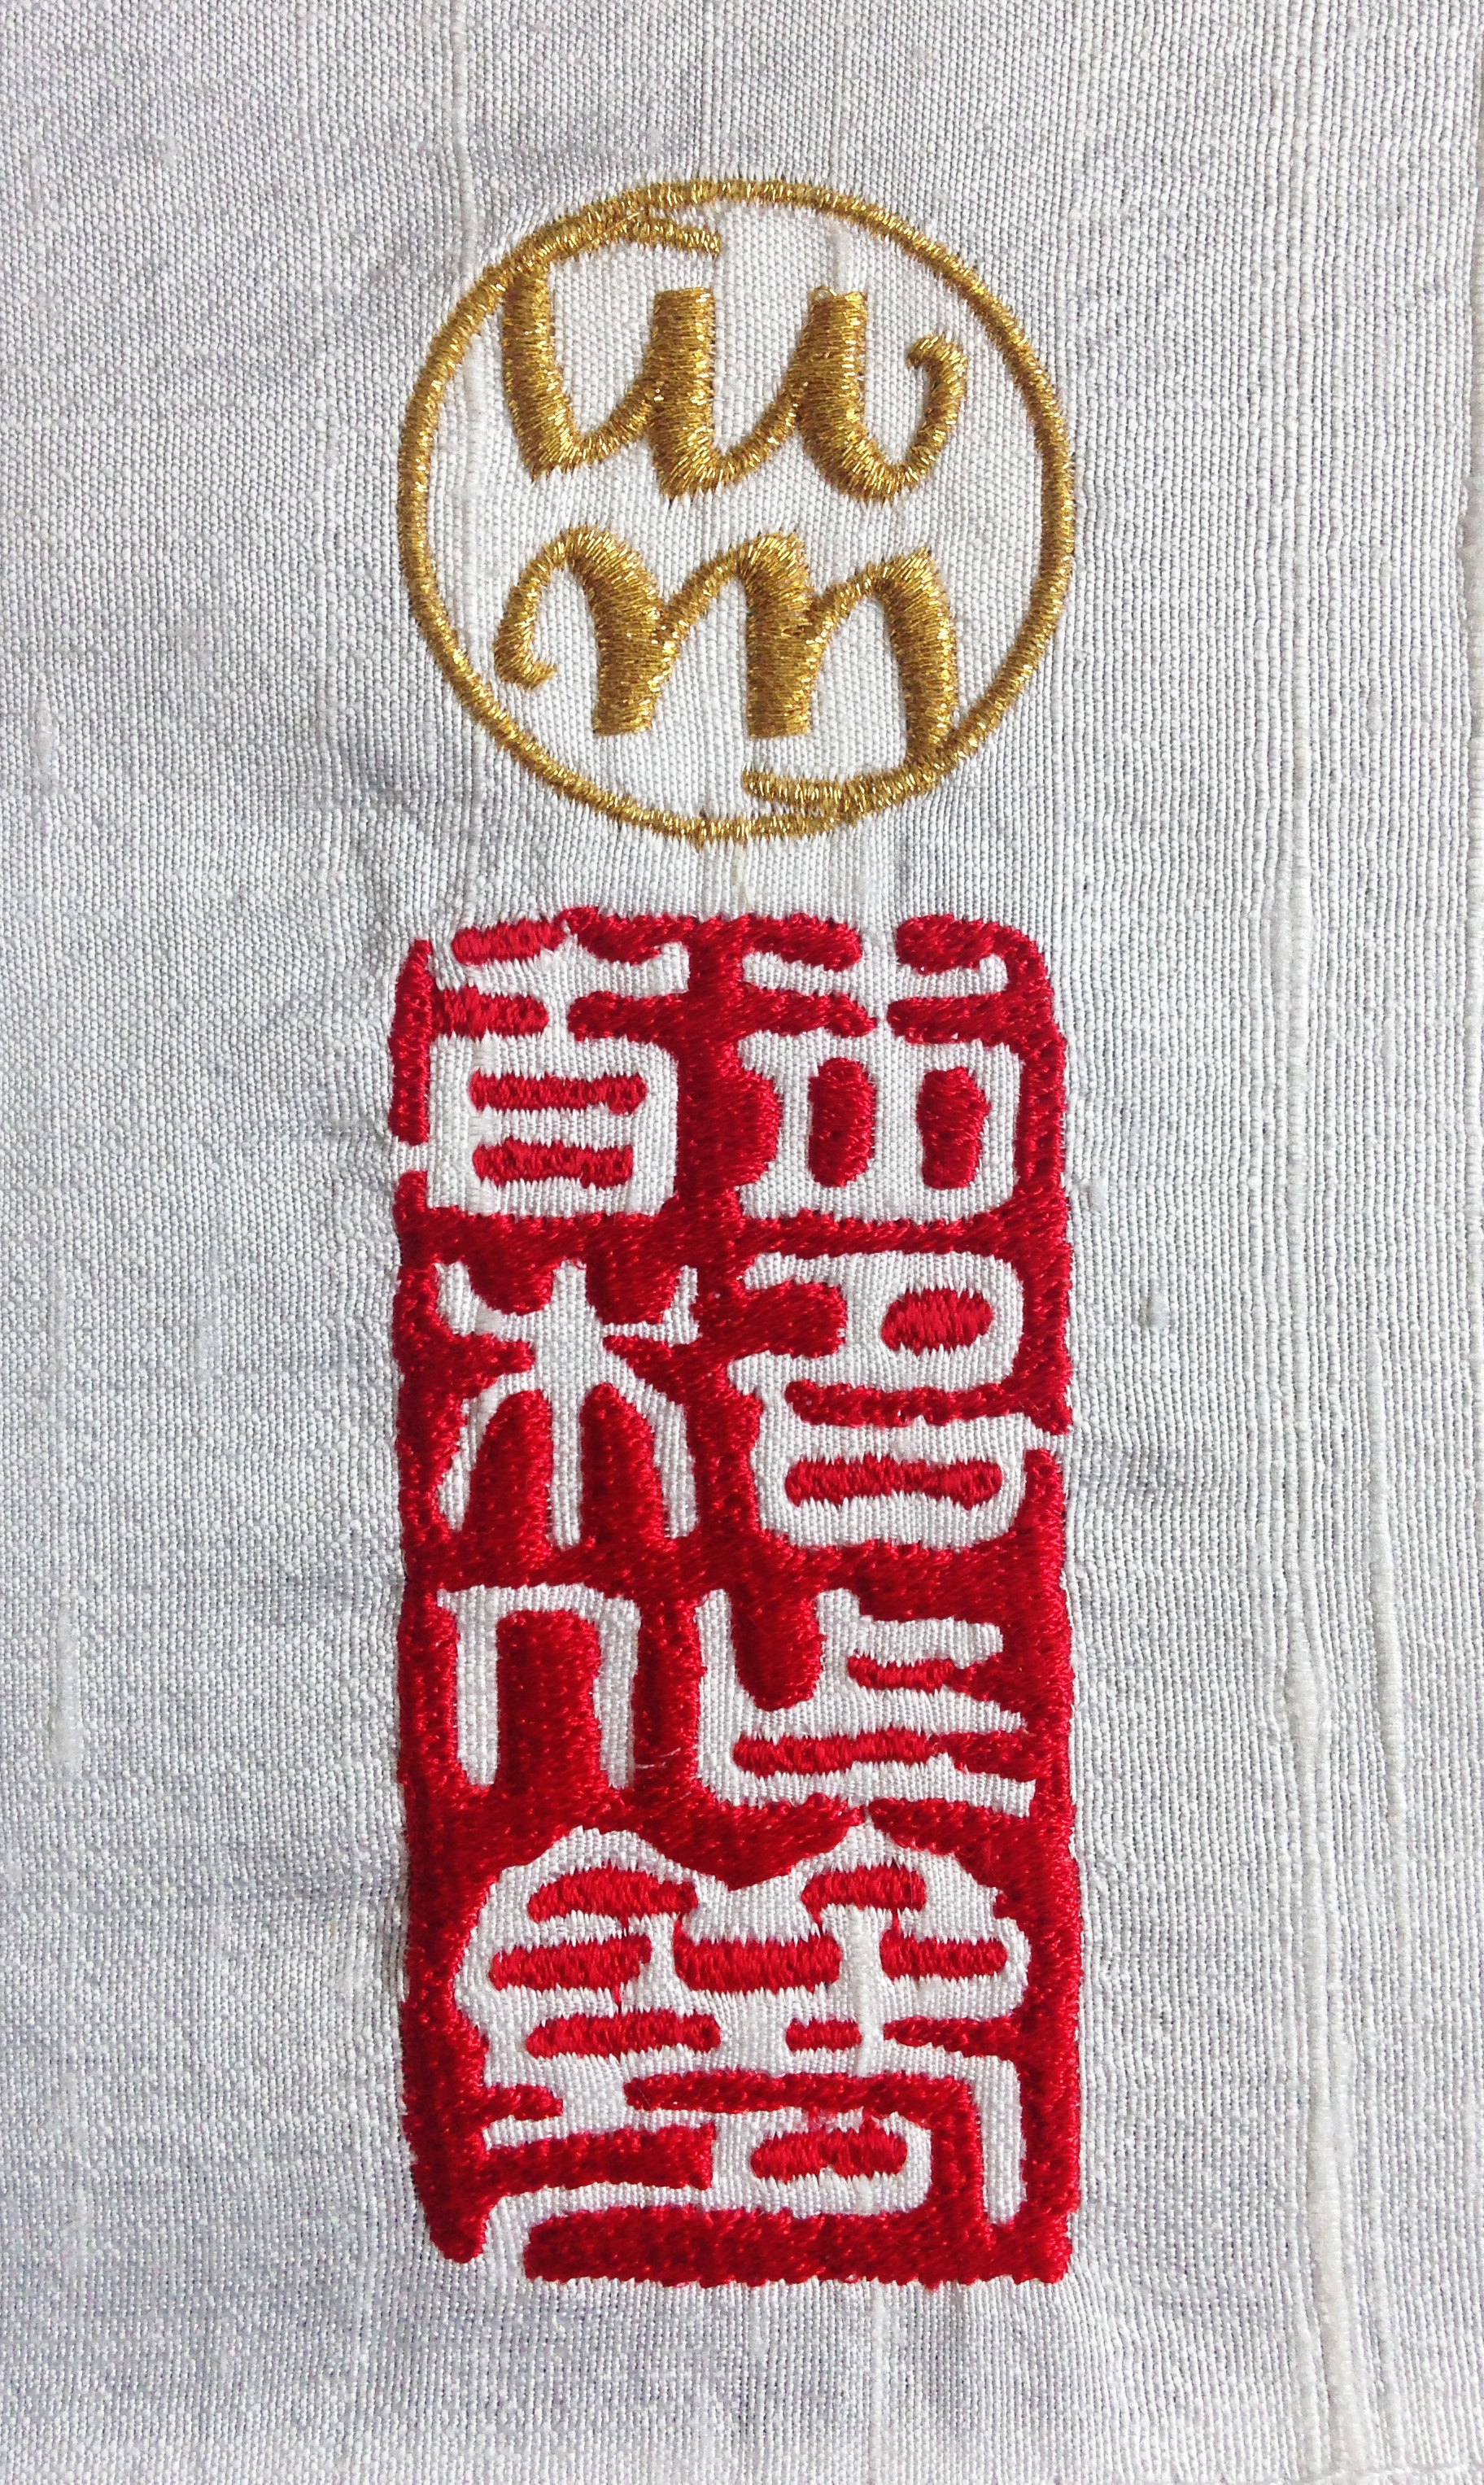 Embroidery detail.jpg